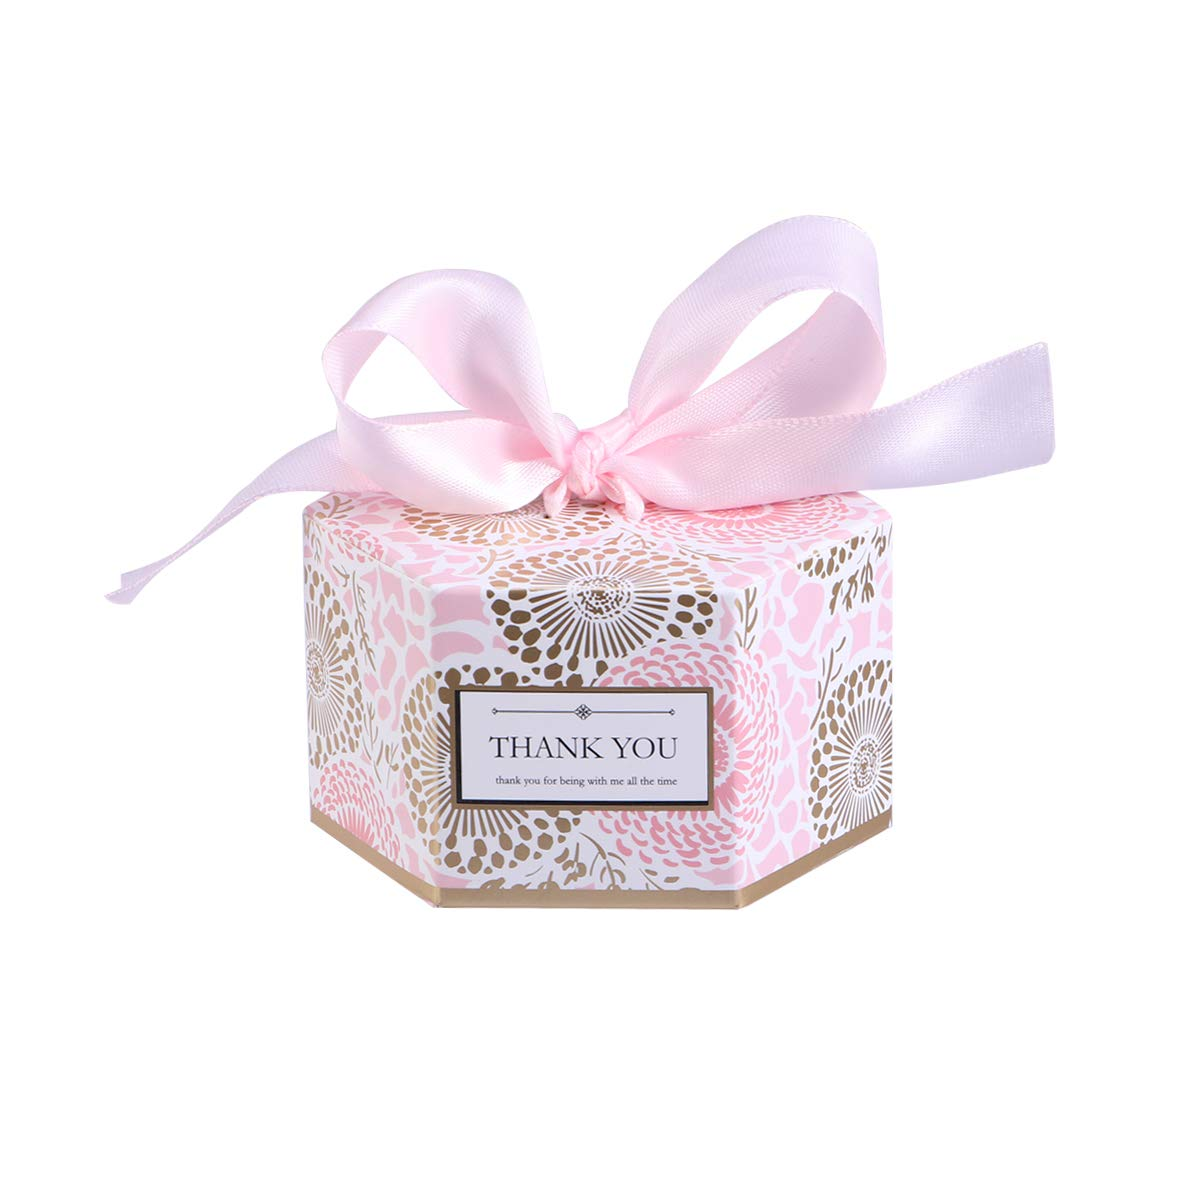 Tendycoco 20pcs Candy Boxes Hexagonal Gift Boxes With Ribbon Decent